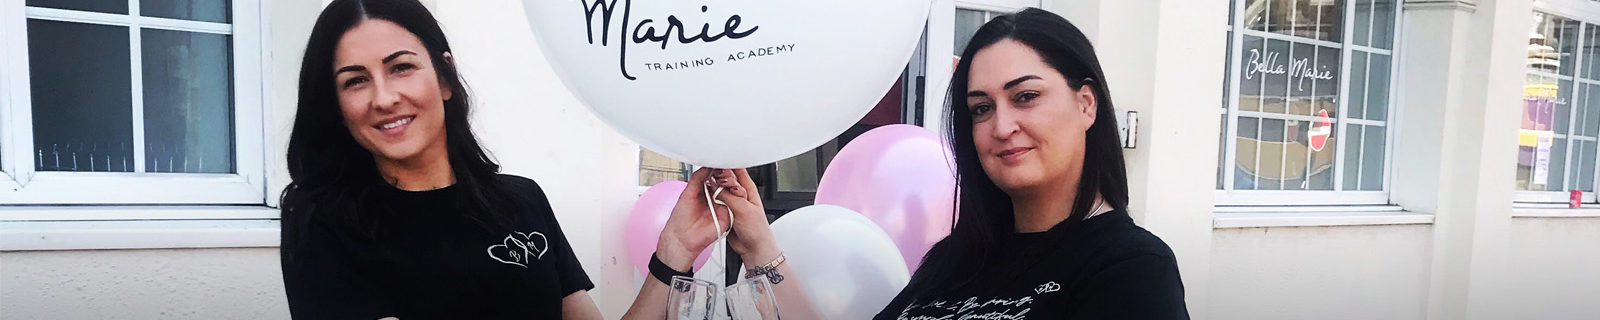 Bella marie training academy at Sunderland